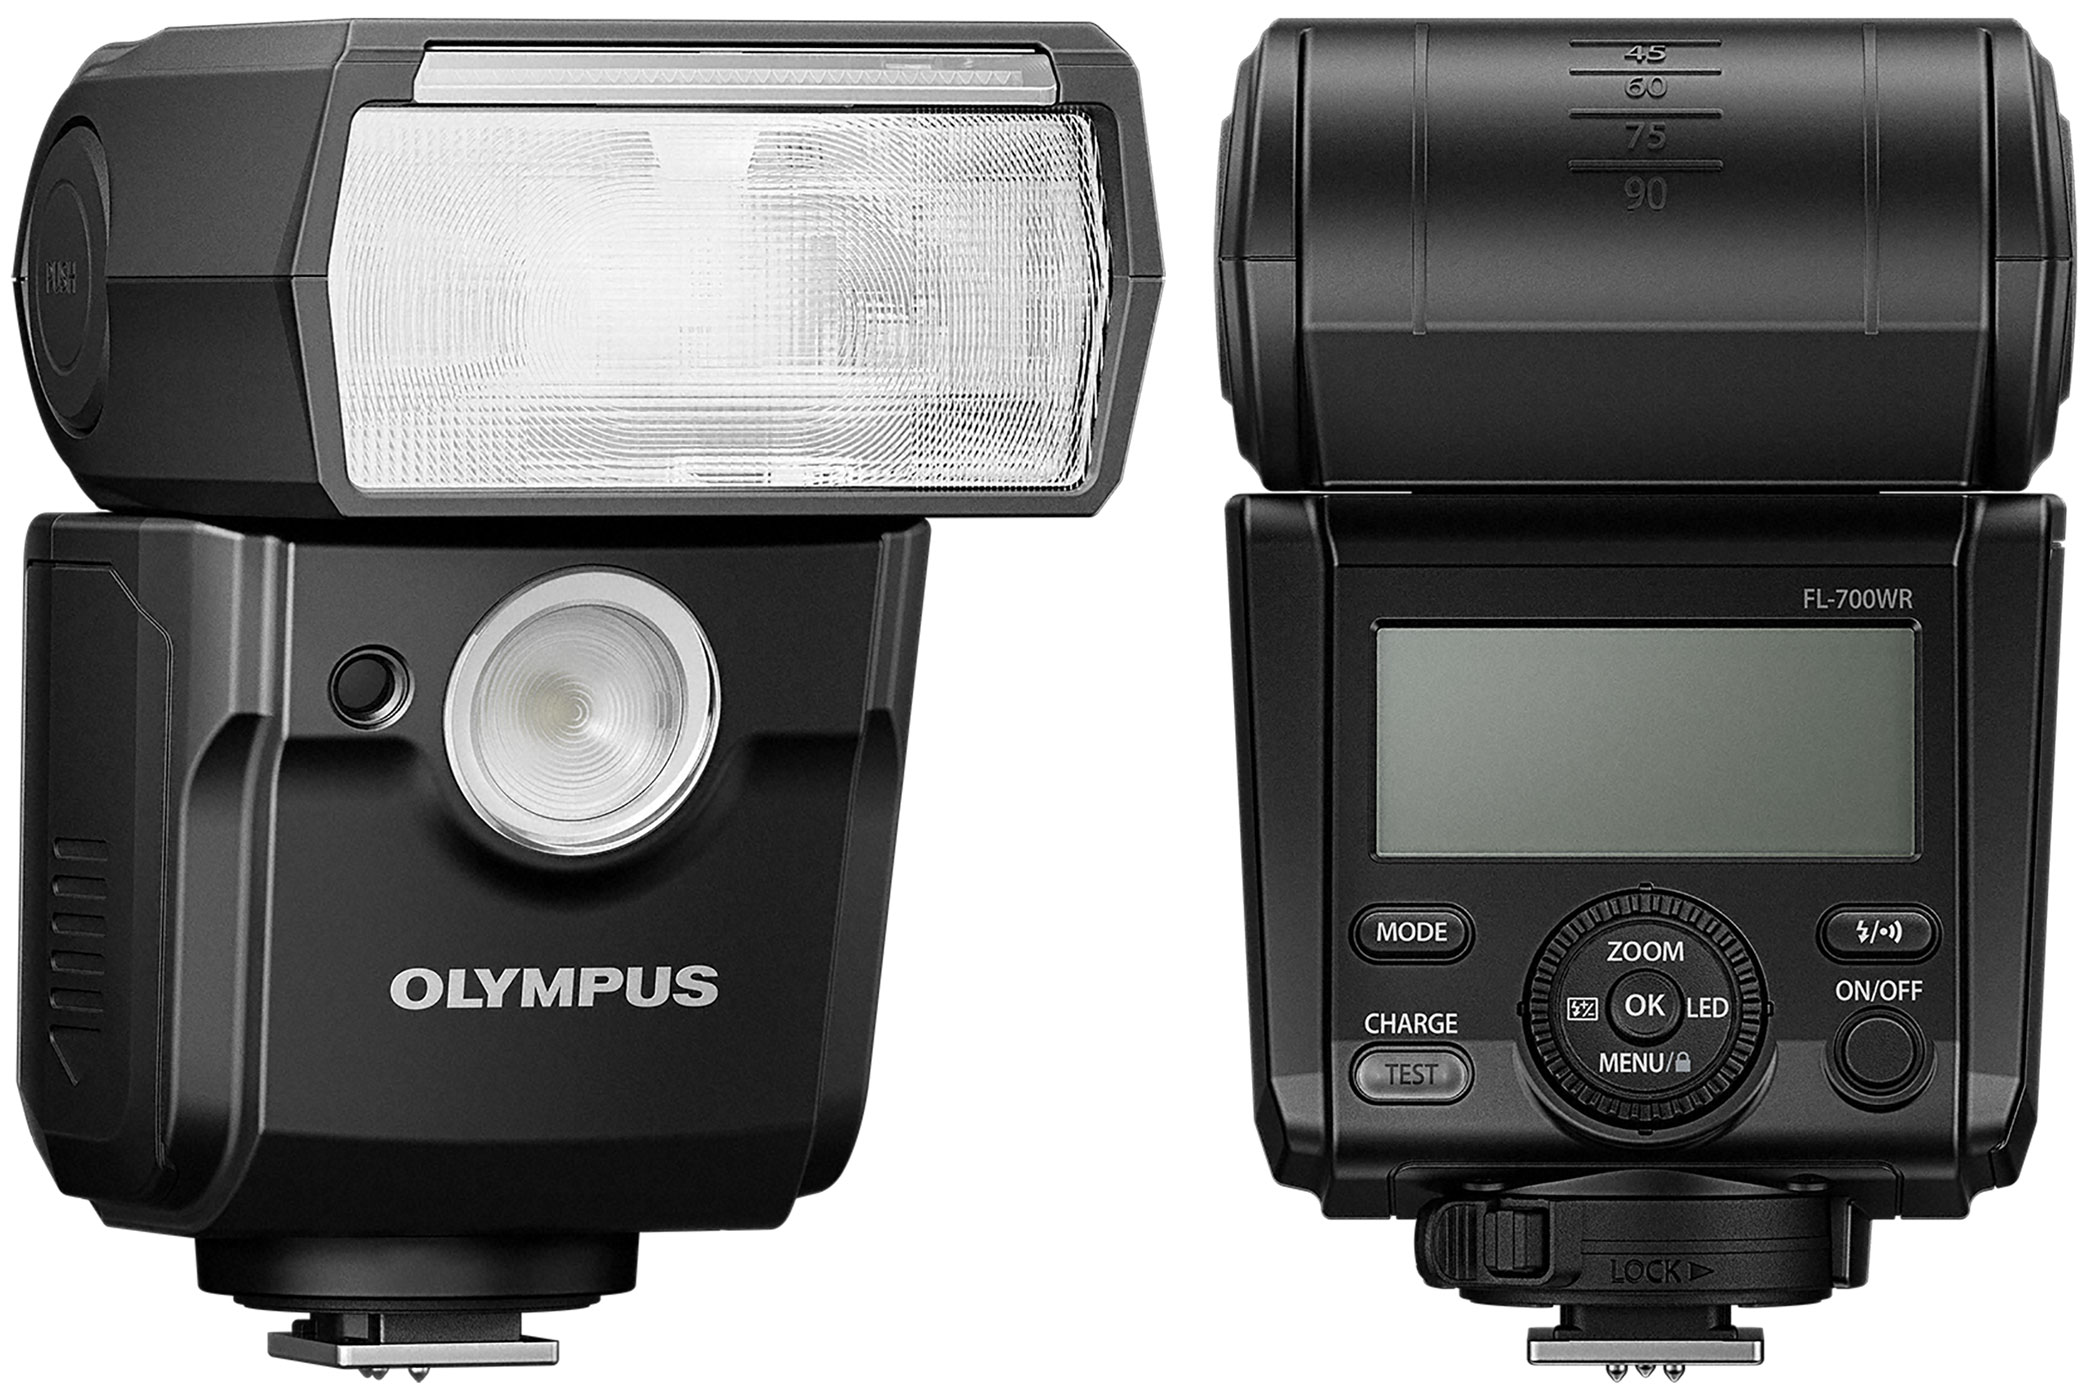 Olympus reveals radio-controlled flash system and upcoming lenses